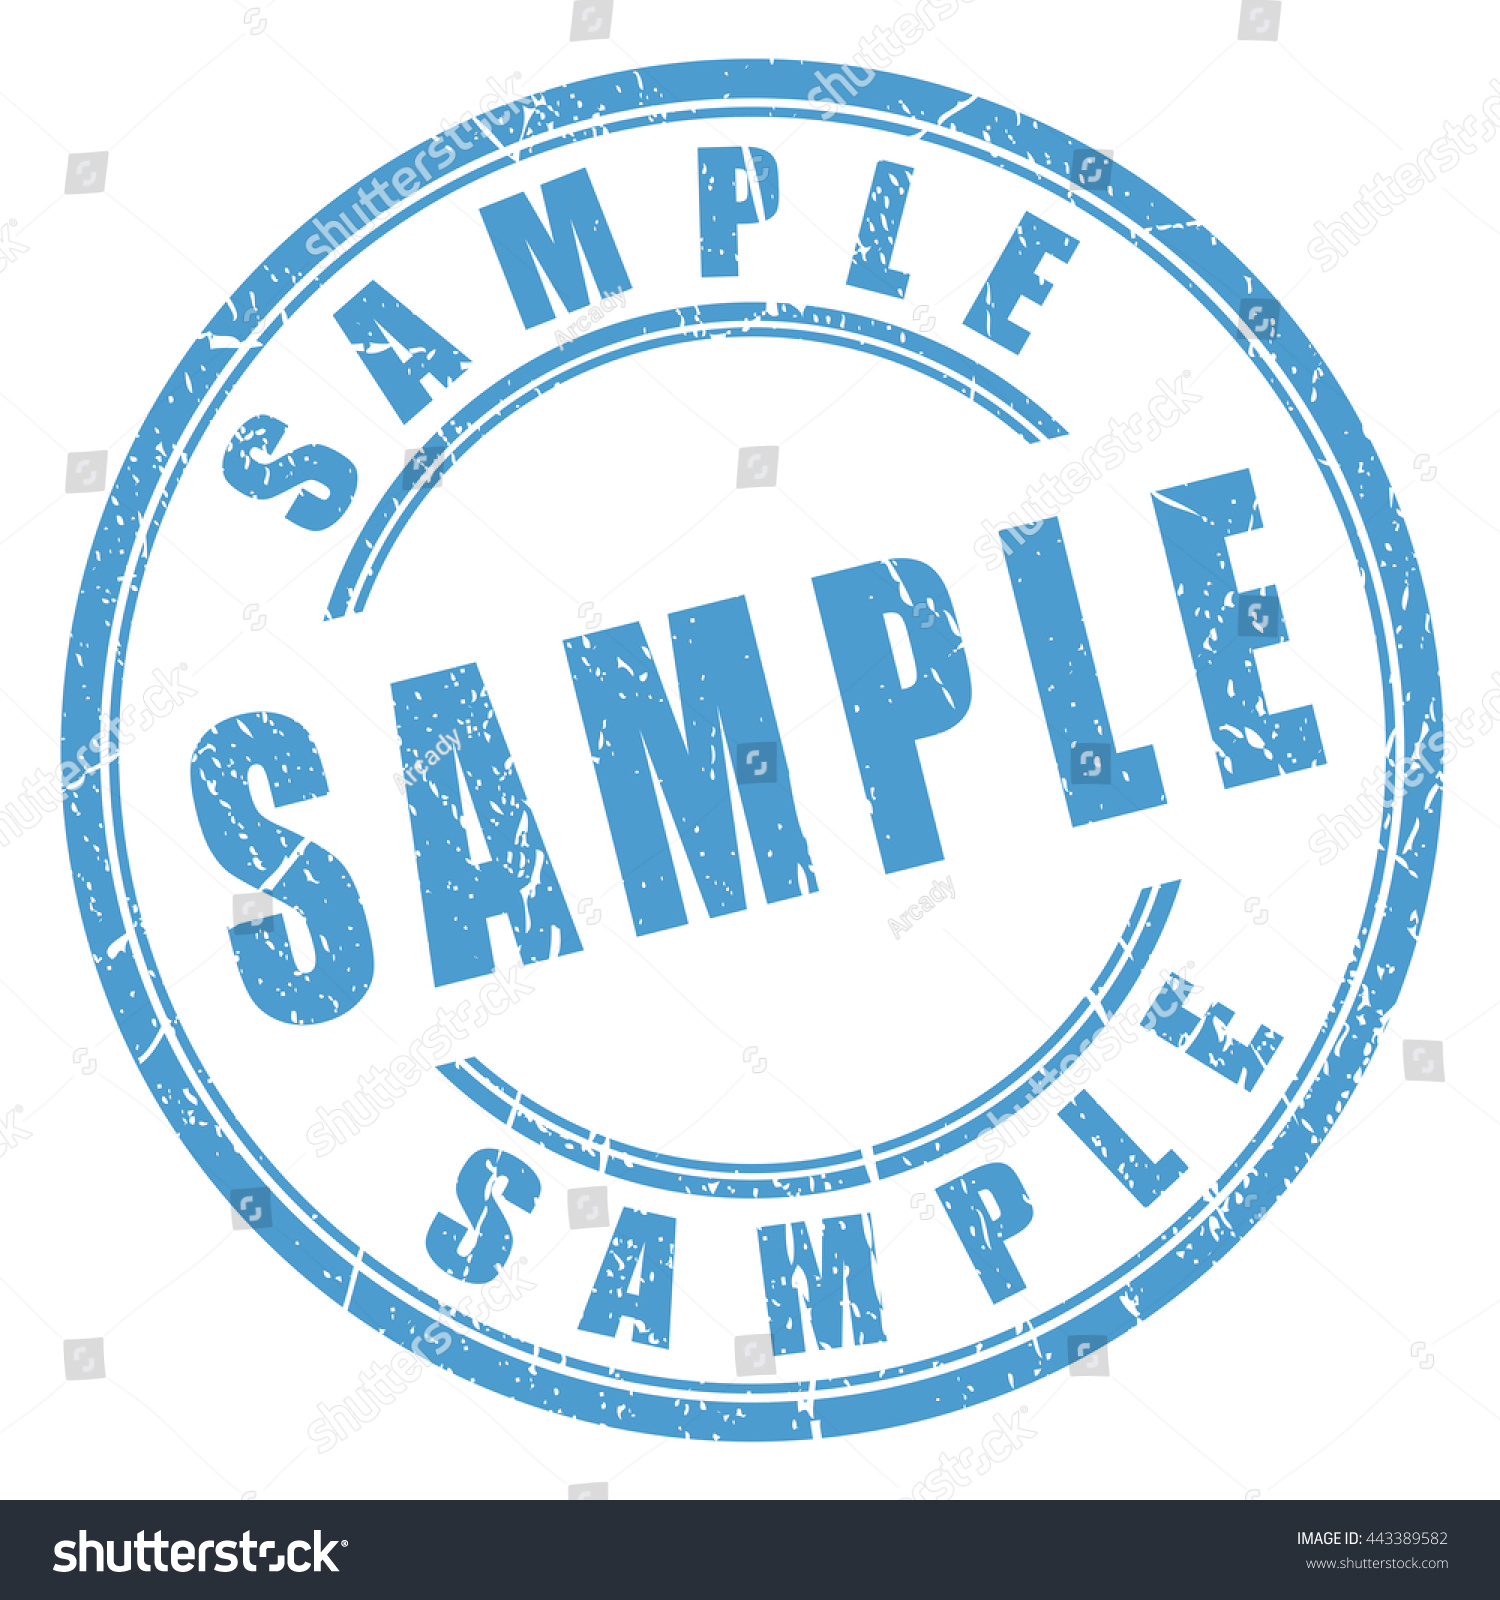 Sample text rubber stamp royalty free cliparts, vectors, and stock.